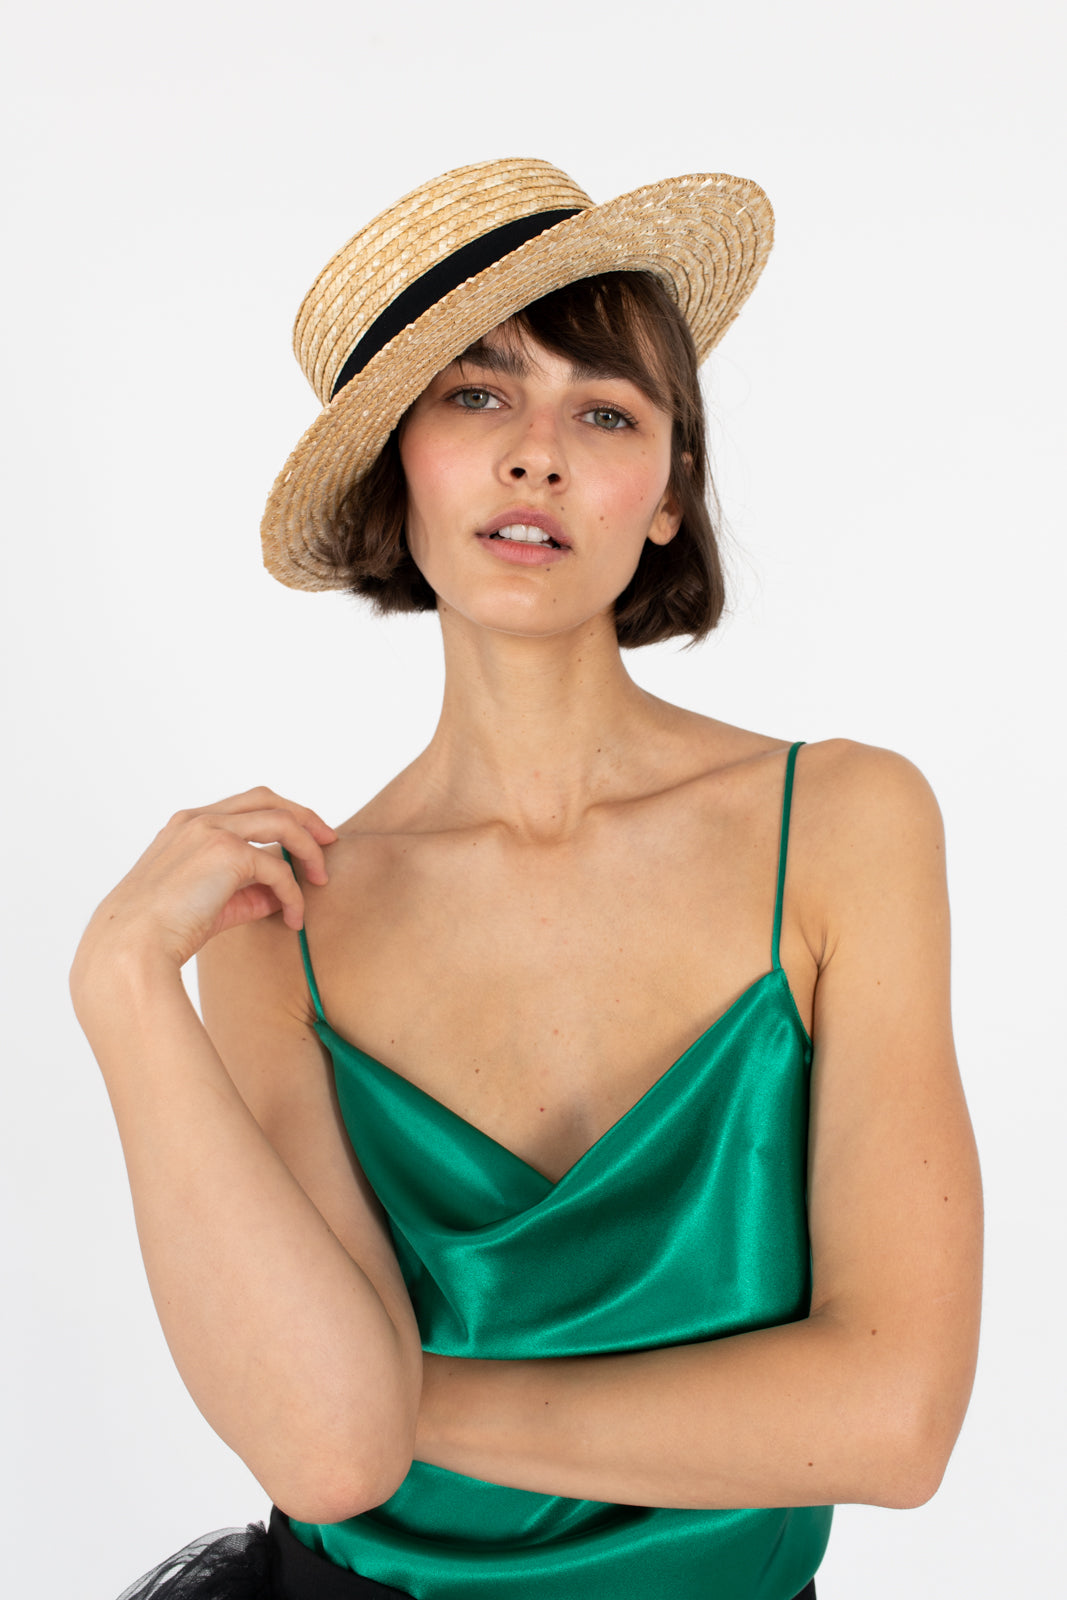 le-slap-hat-natural-straw-tulum-beach-summer-outfit-inspo-fashion